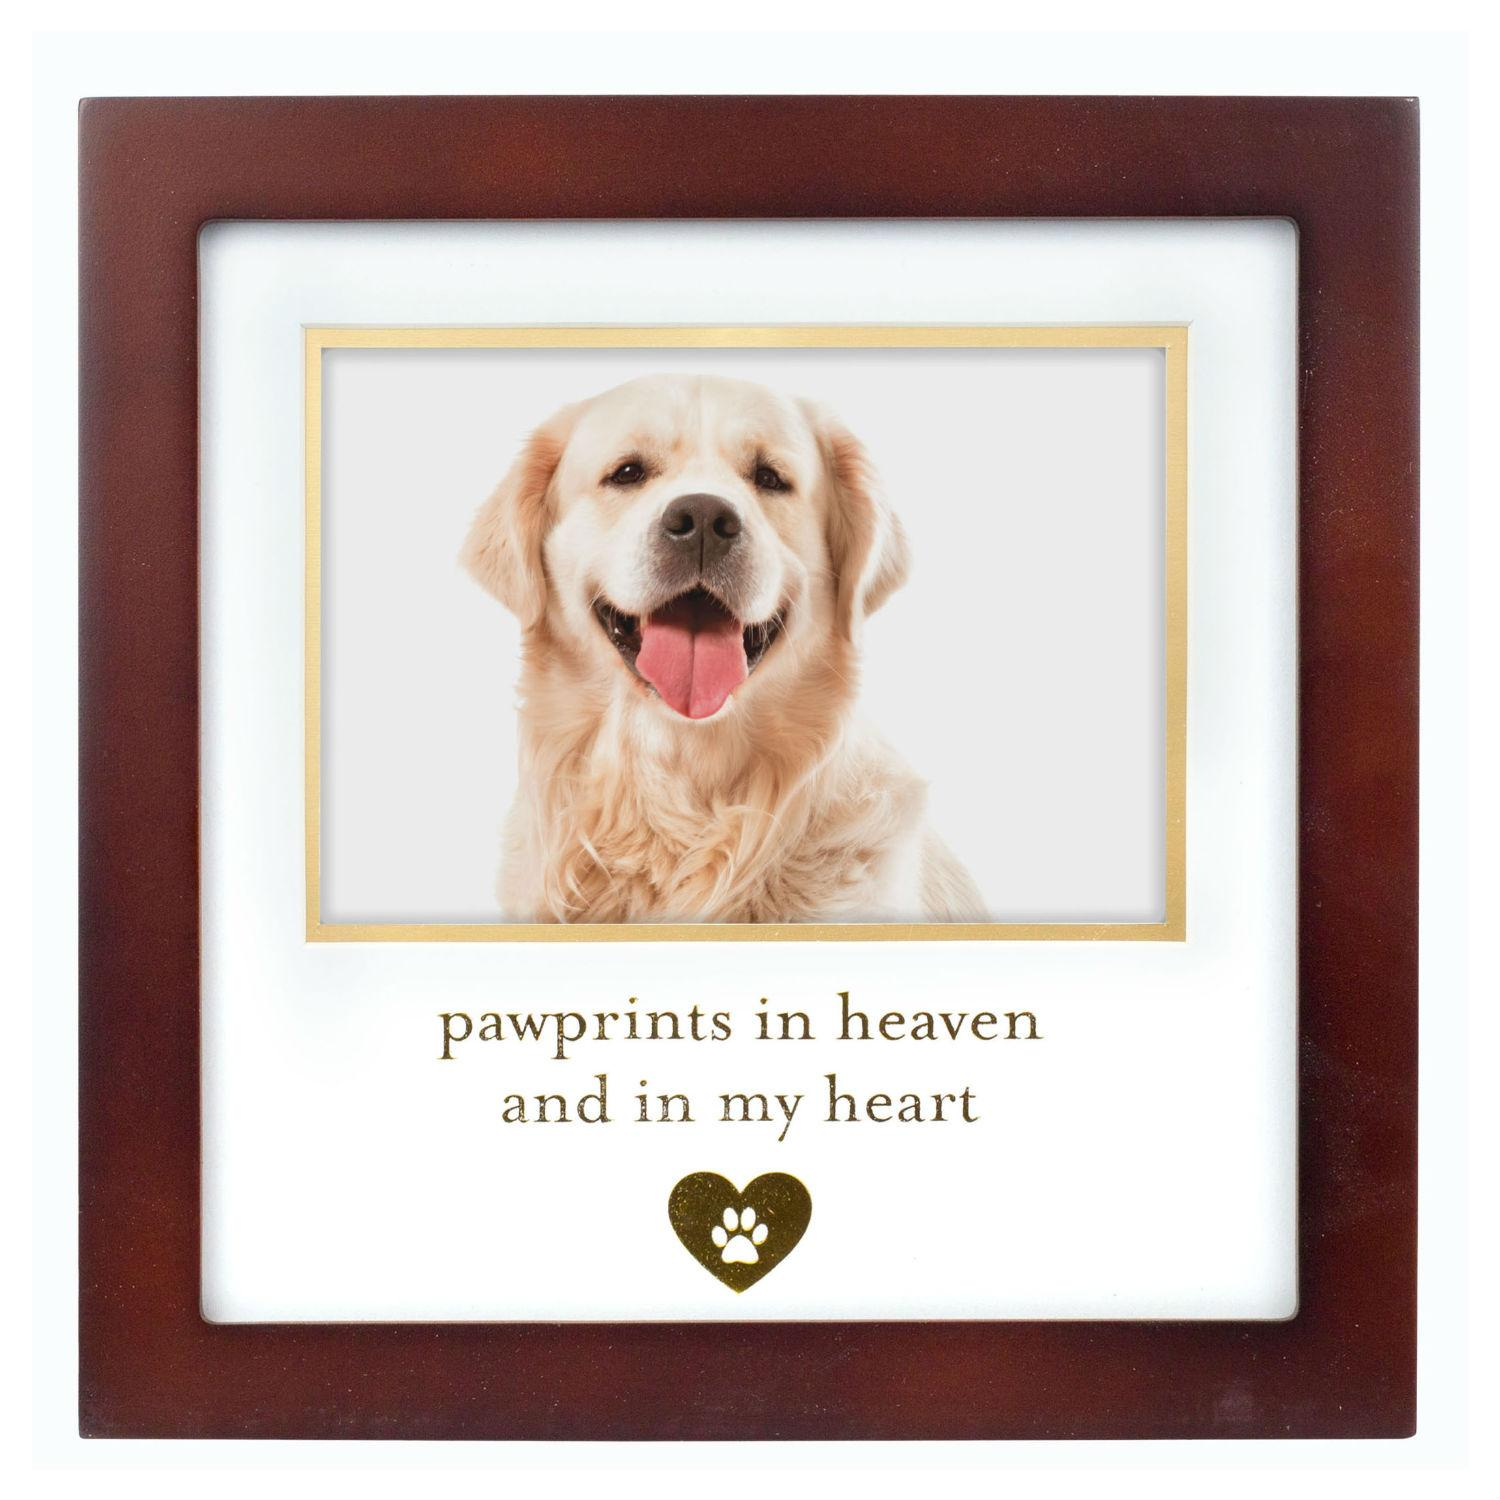 Pawprints in Heaven Pet Memory Frame by Pearhead